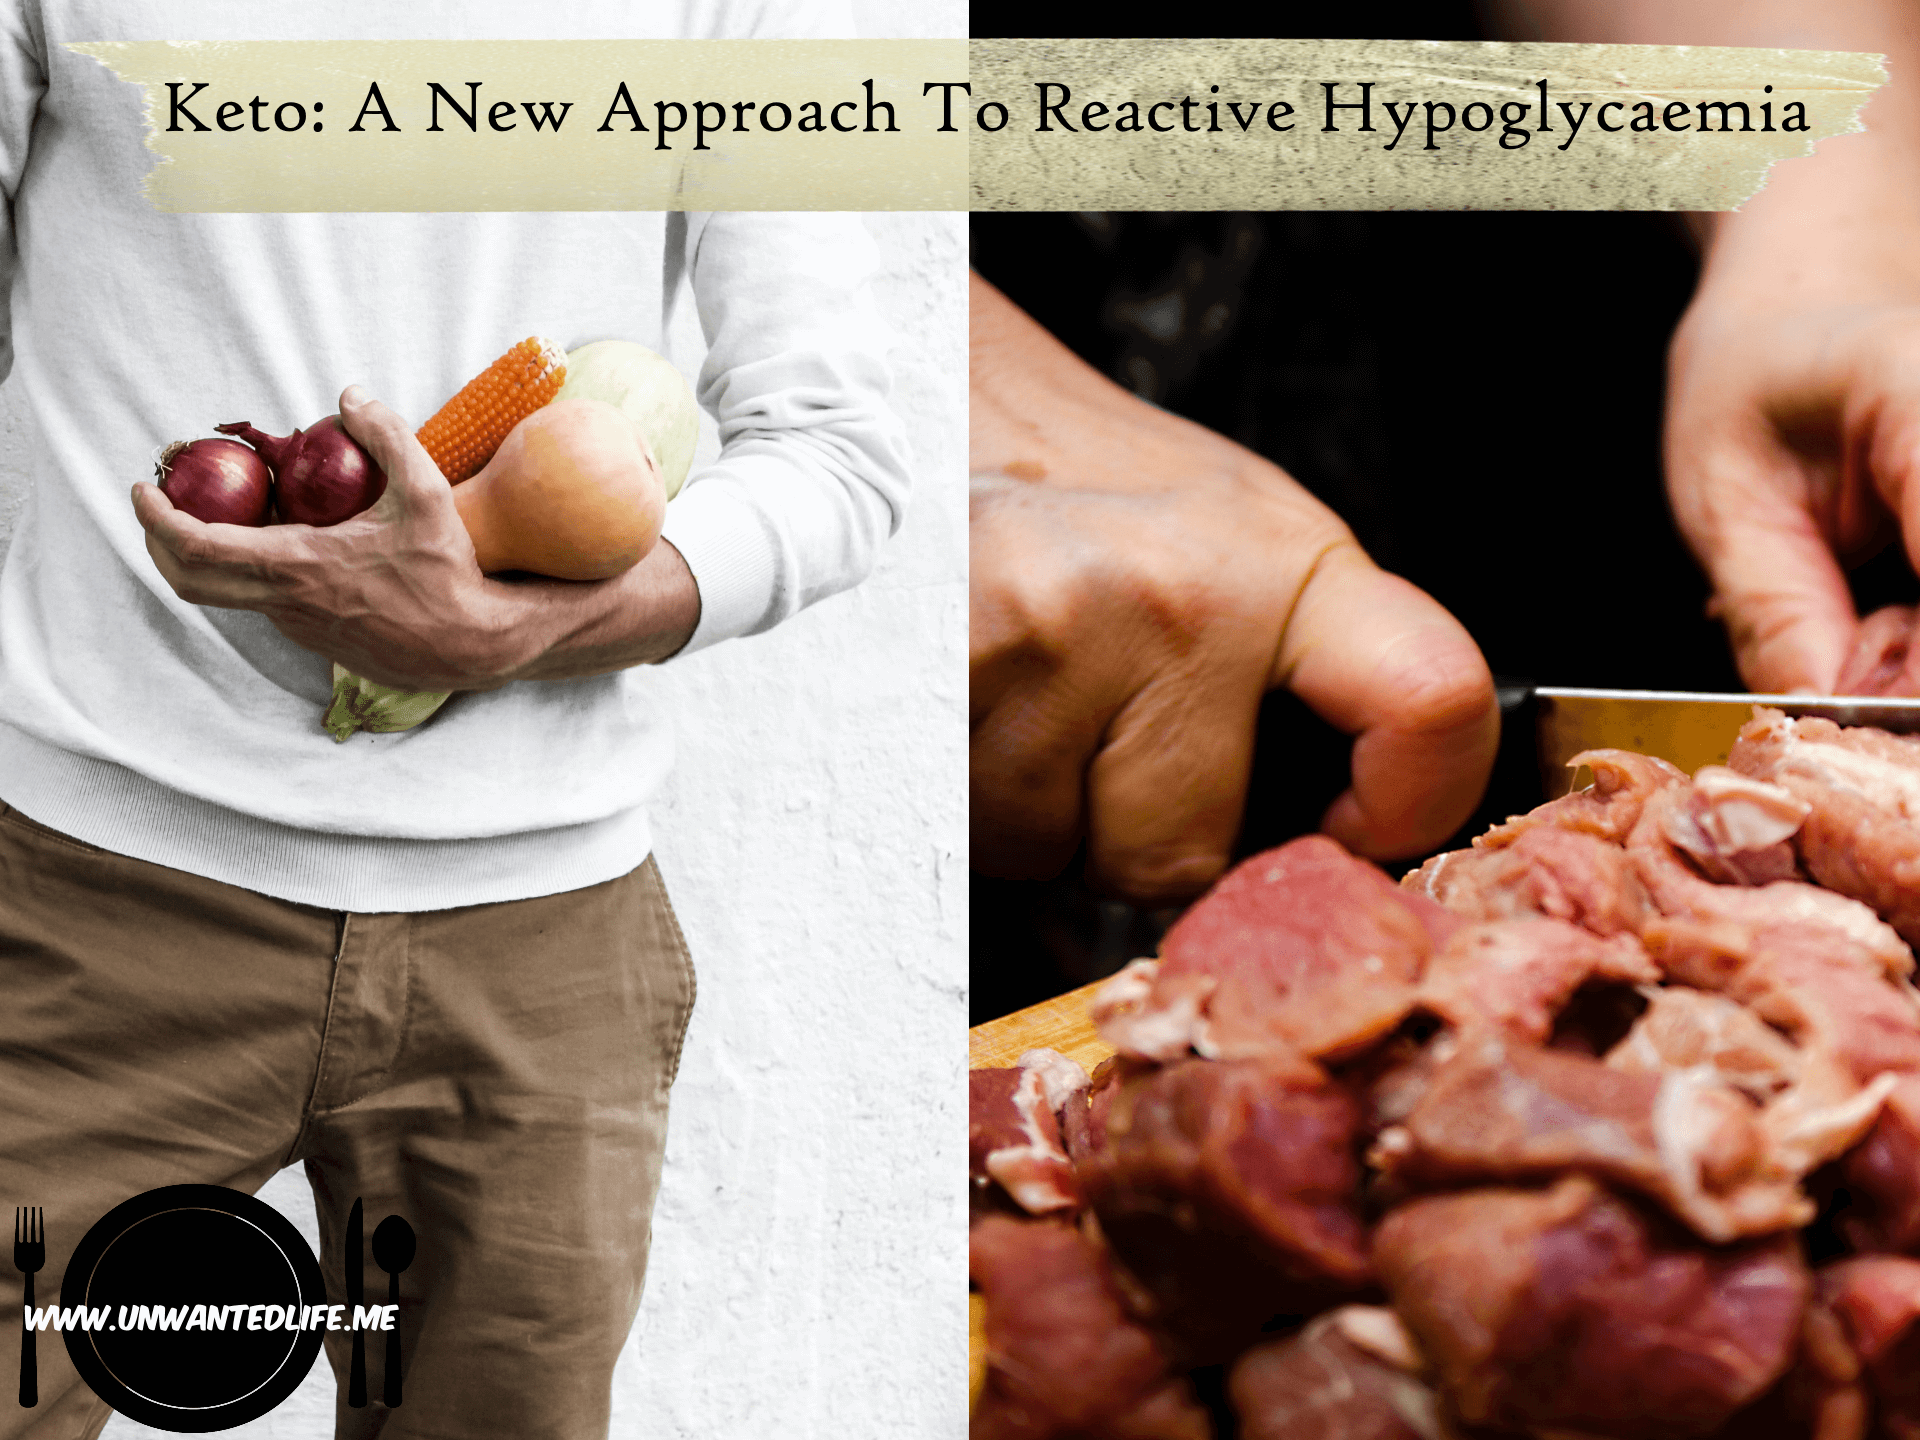 Keto: A New Approach To Reactive Hypoglycaemia | Diet and Hypoglycemia | Unwanted Life